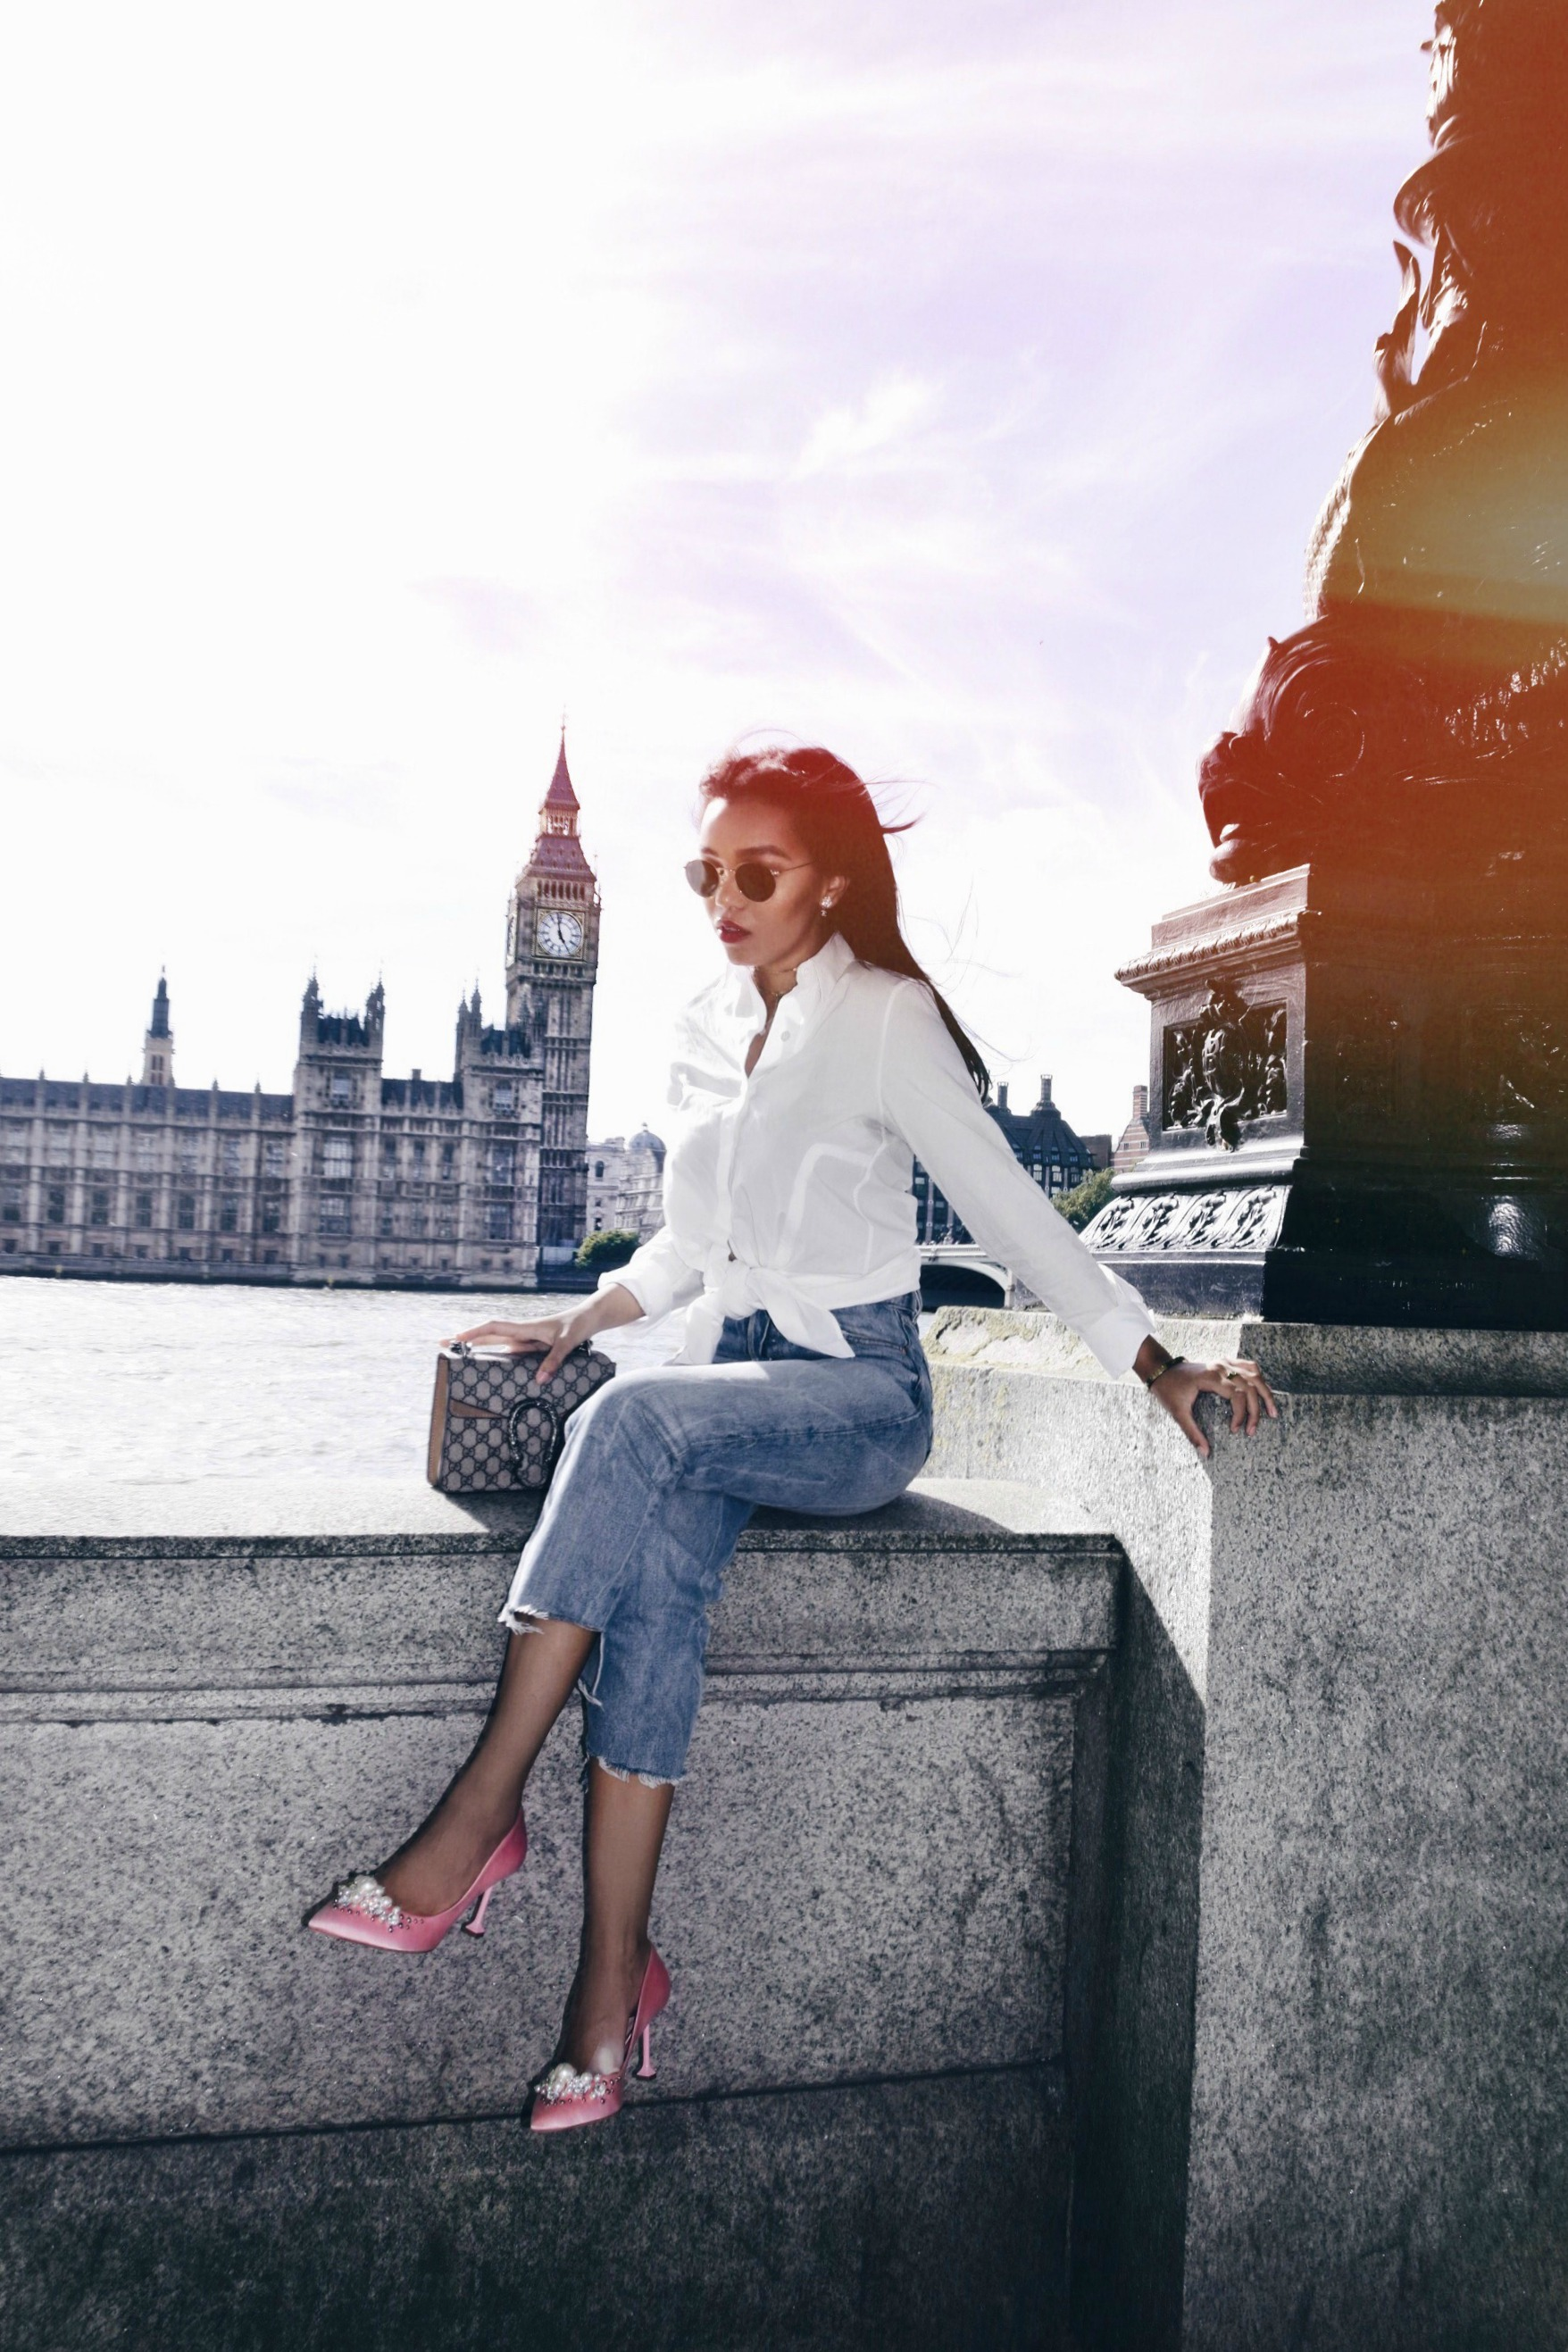 London Bridge // London Travel Diary // GRLFRND Denim Jeans // Acne Studios White Button Up // Pink Pearl & Rhinestone Miu Miu Pumps // Nude Gucci Dionysus Bag // Peggy Porschen's Cakes Bakery // Los Angeles Fashion Blogger Daphne Blunt: To Style, With Love